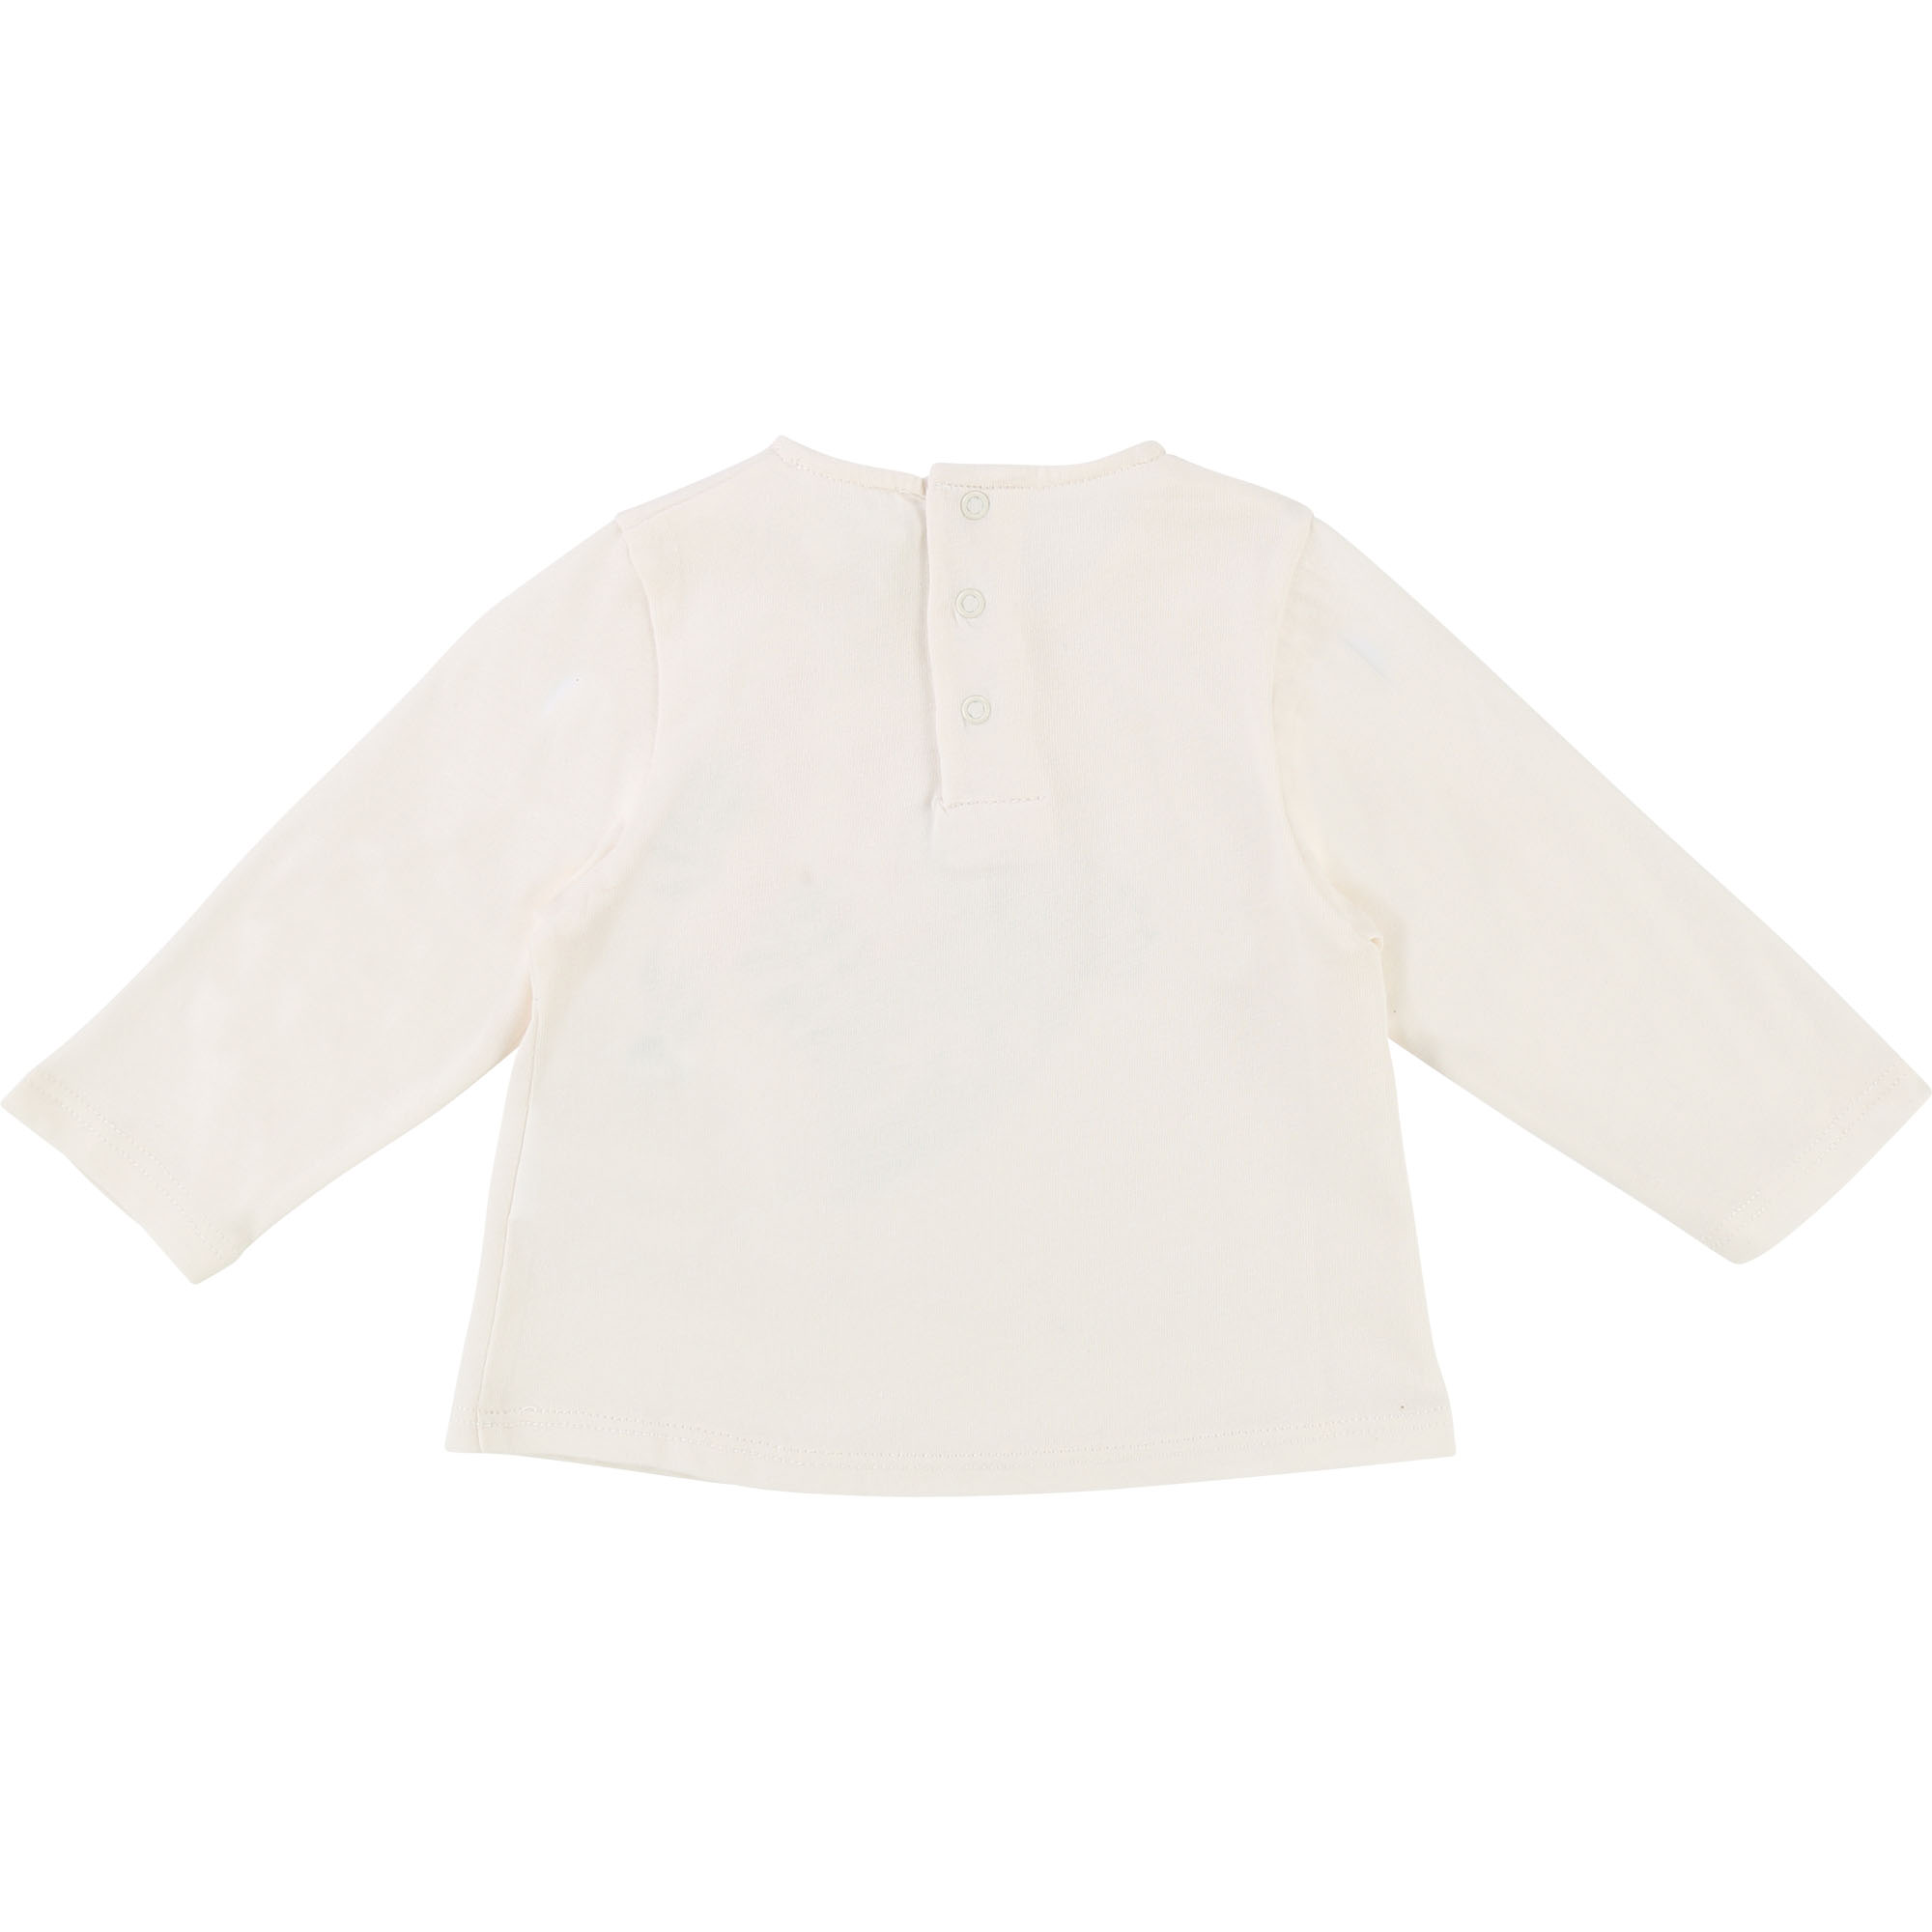 Printed long sleeves t-shirt CARREMENT BEAU for GIRL